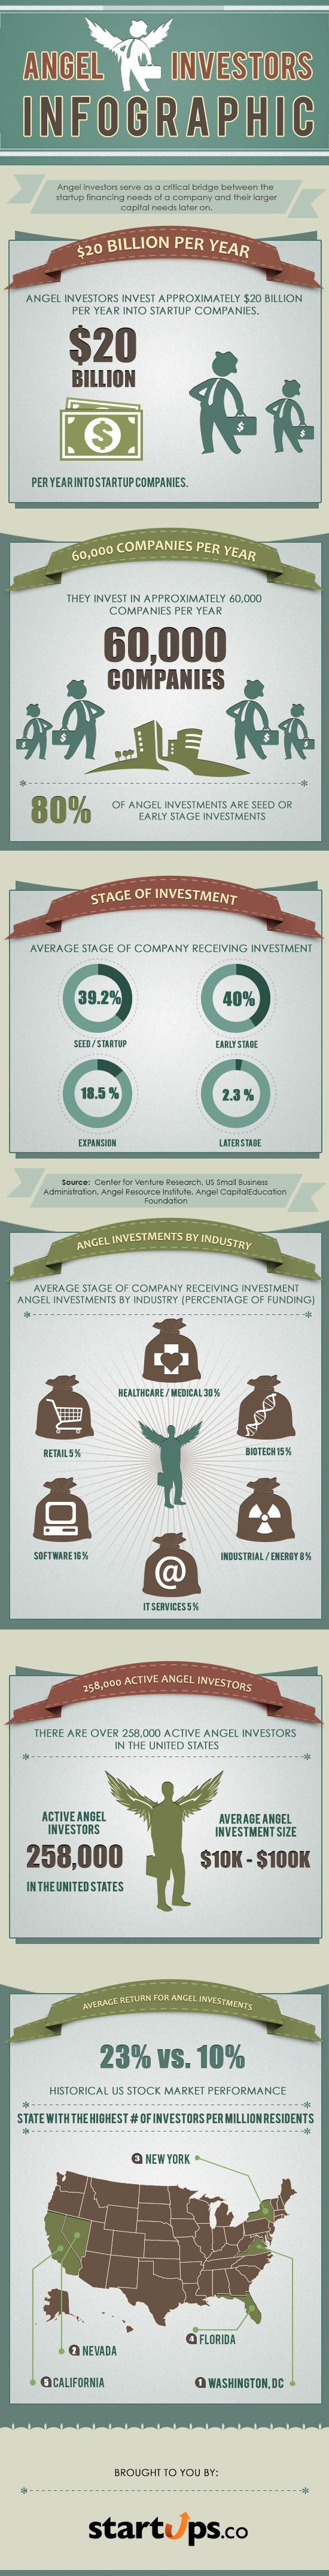 Angel investors put $20B a year into startups (infographic)